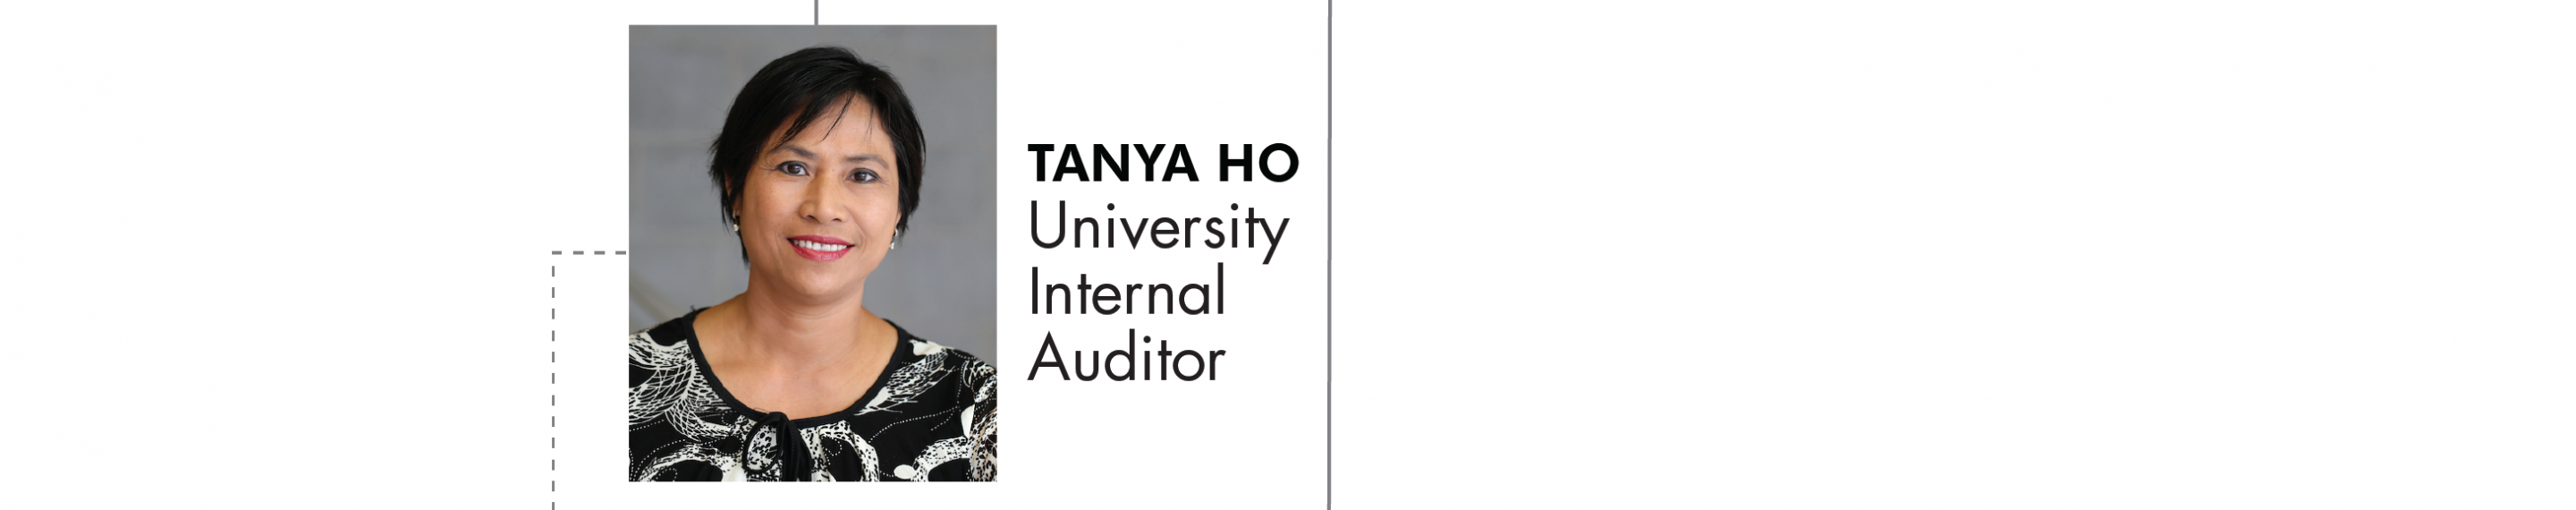 Tanya Ho University Internal Auditor